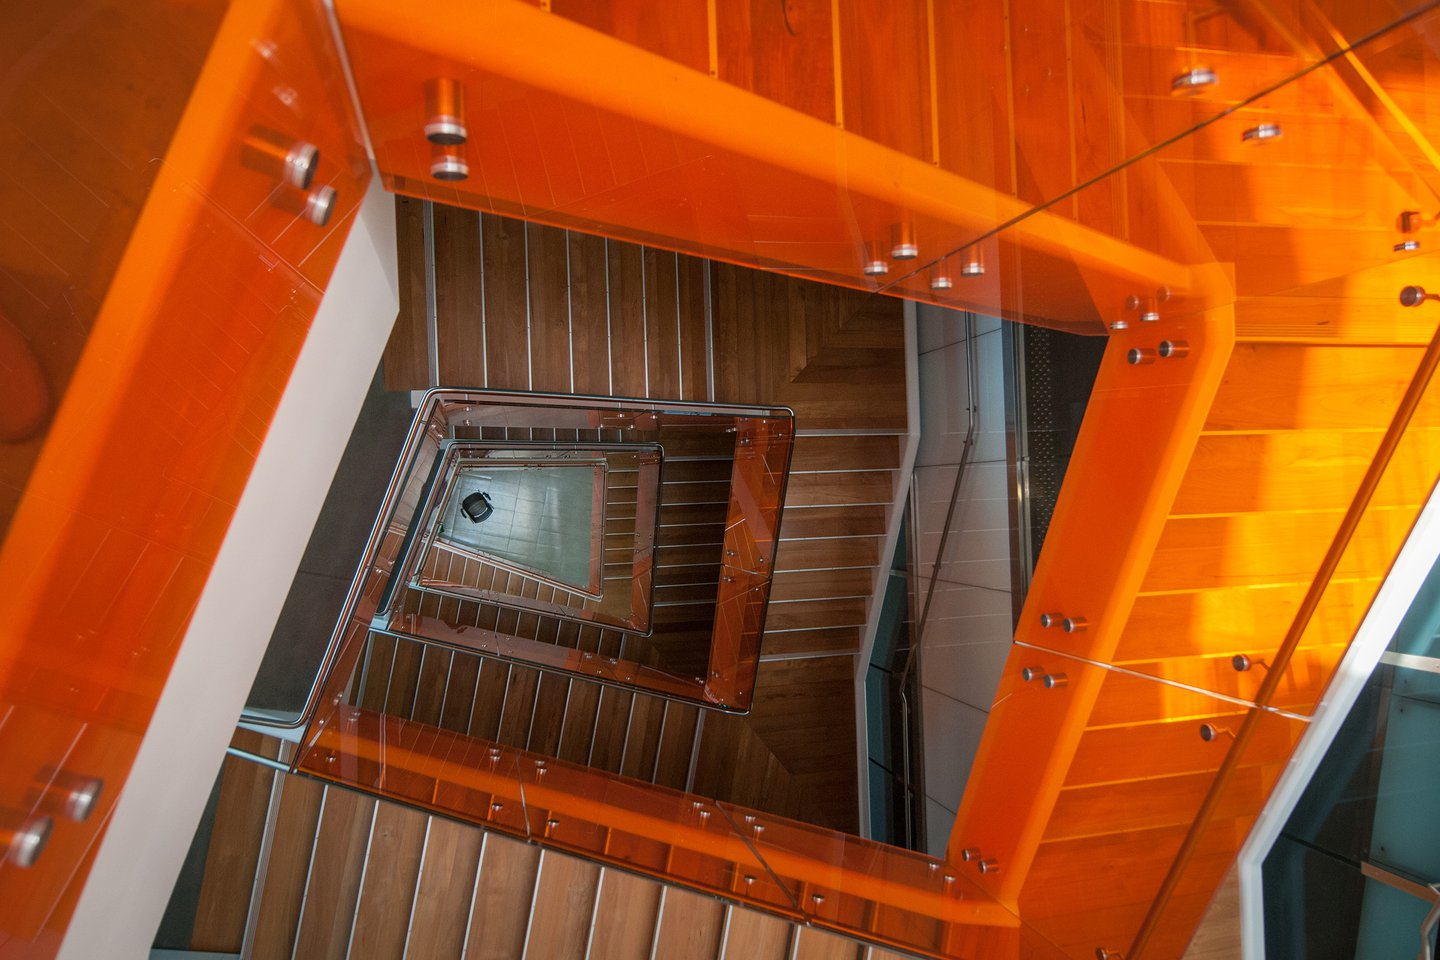 Photo of a golden-brown wooden spiral staircase, looking down to a single chair at the bottom